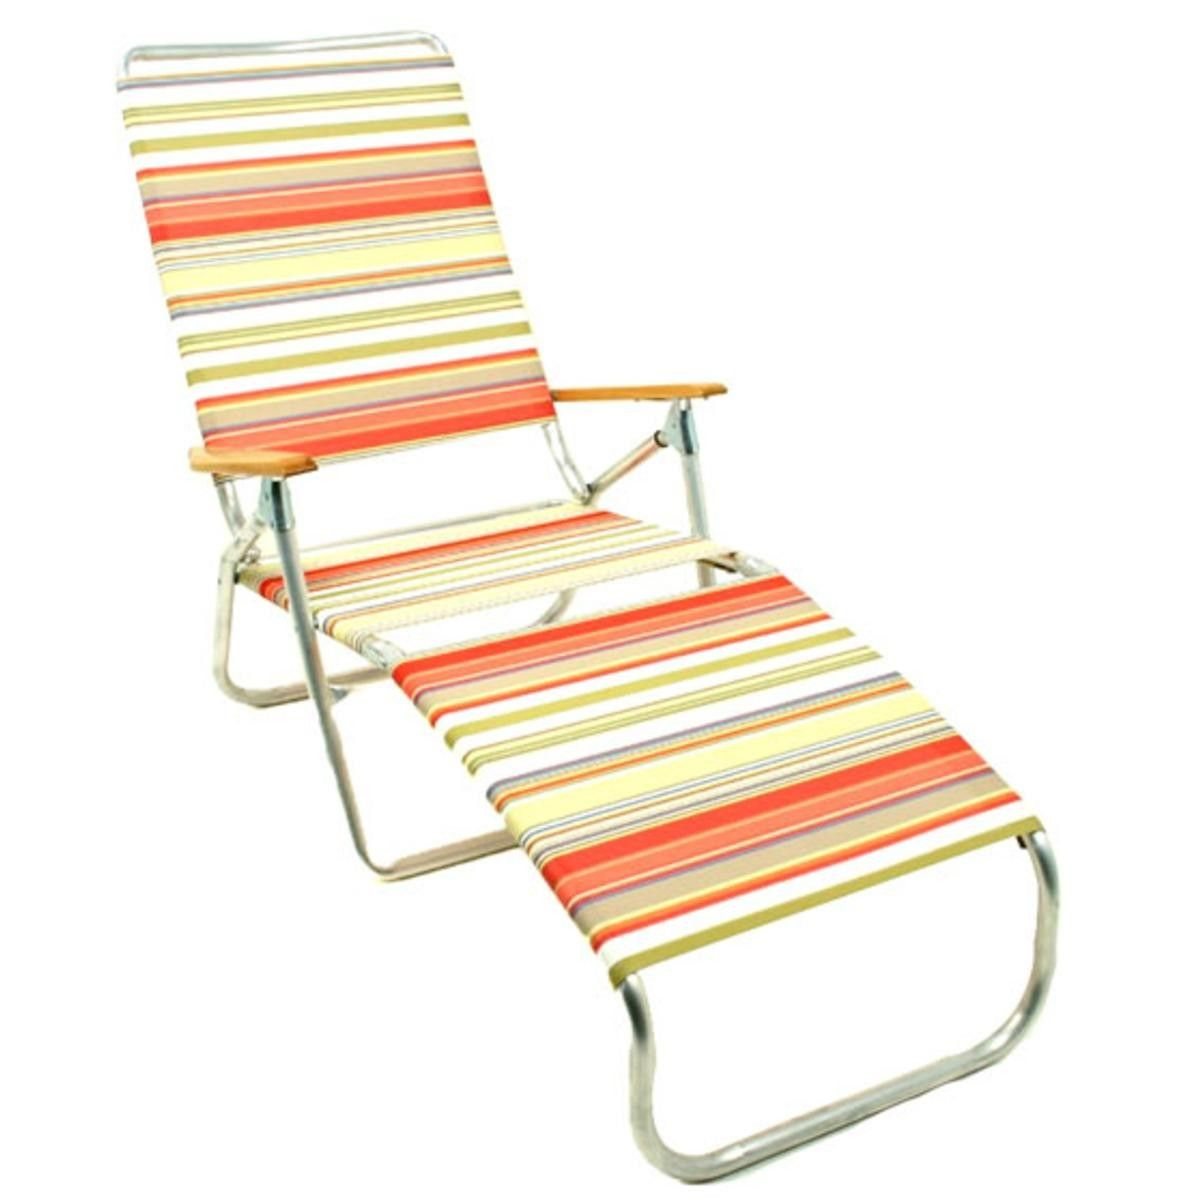 Portable Beach Chair Design,customized Printing Promotional Beach Chair Sets